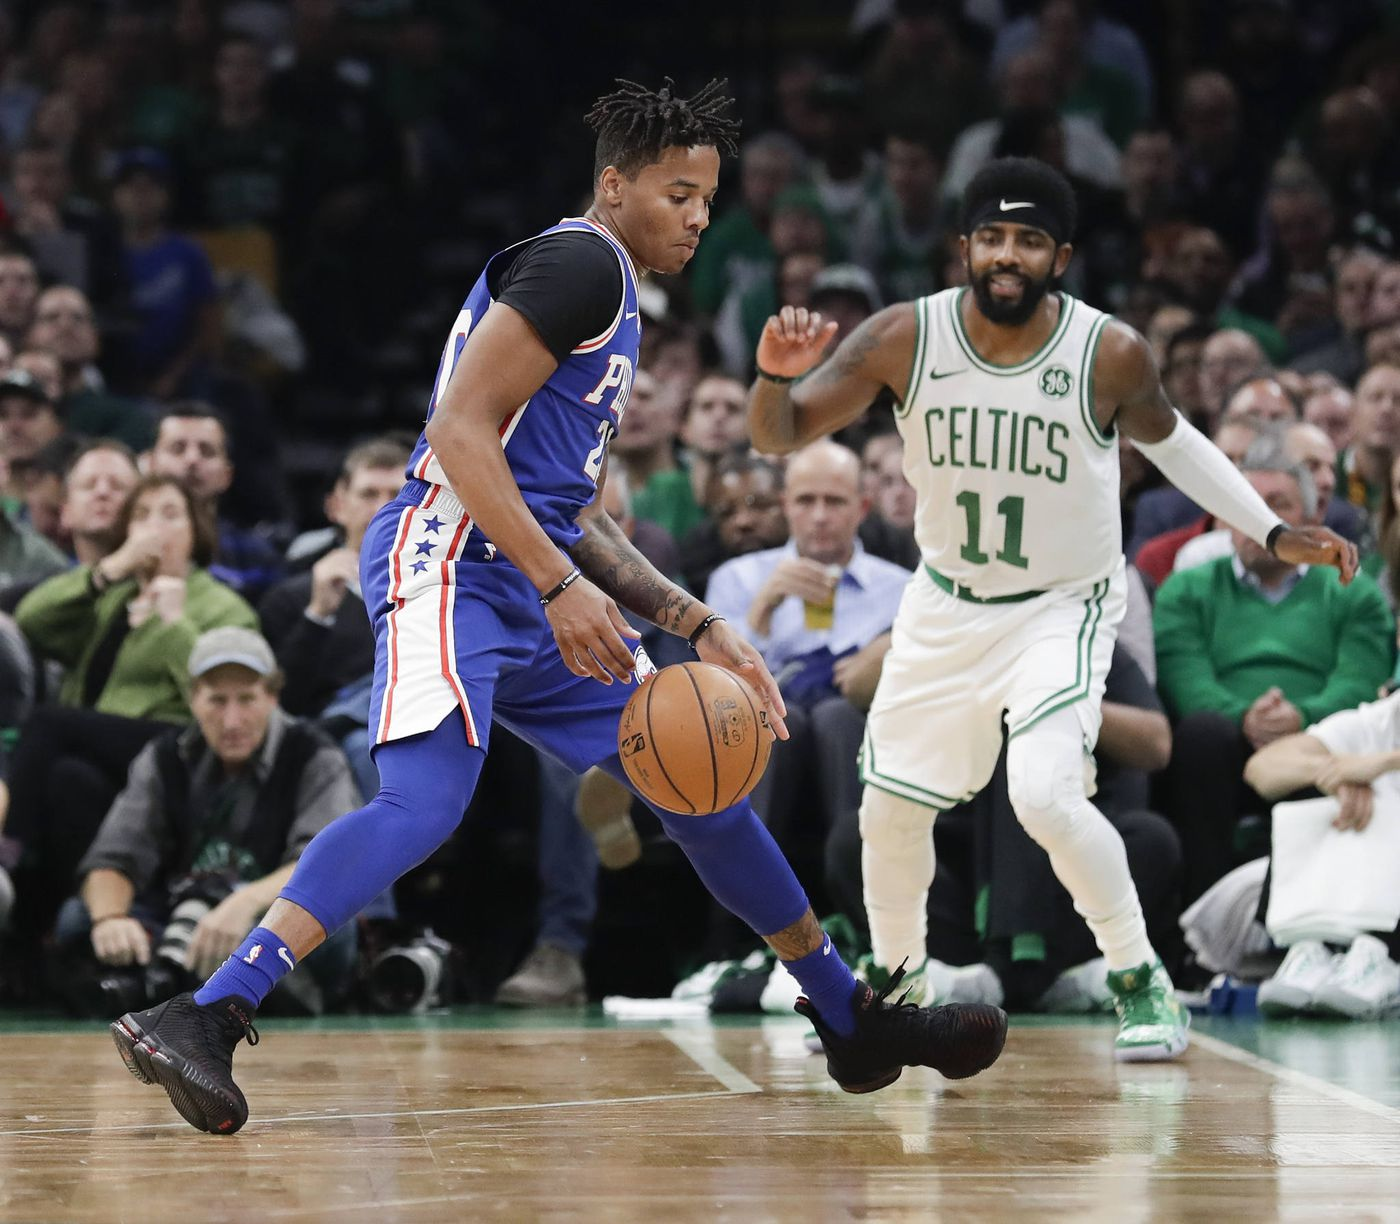 This week in Philly sports: Evaluating the Phillies' prospects, Markelle Fultz stumbles out of the gate, and Corey Clement's run for a job